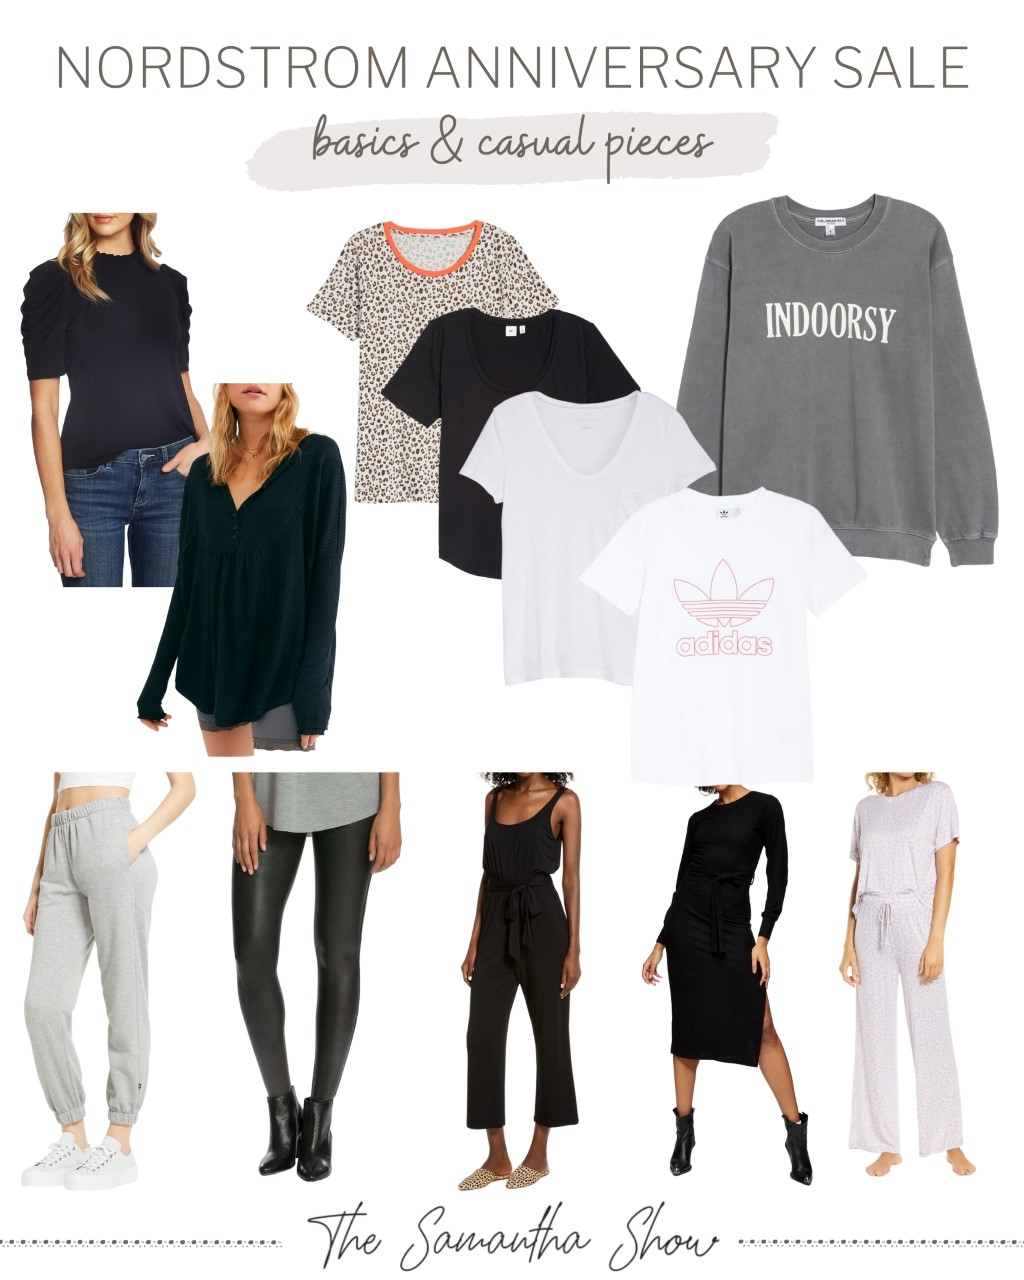 Nordstrom Anniversary Sale: Basics and Casual Pieces